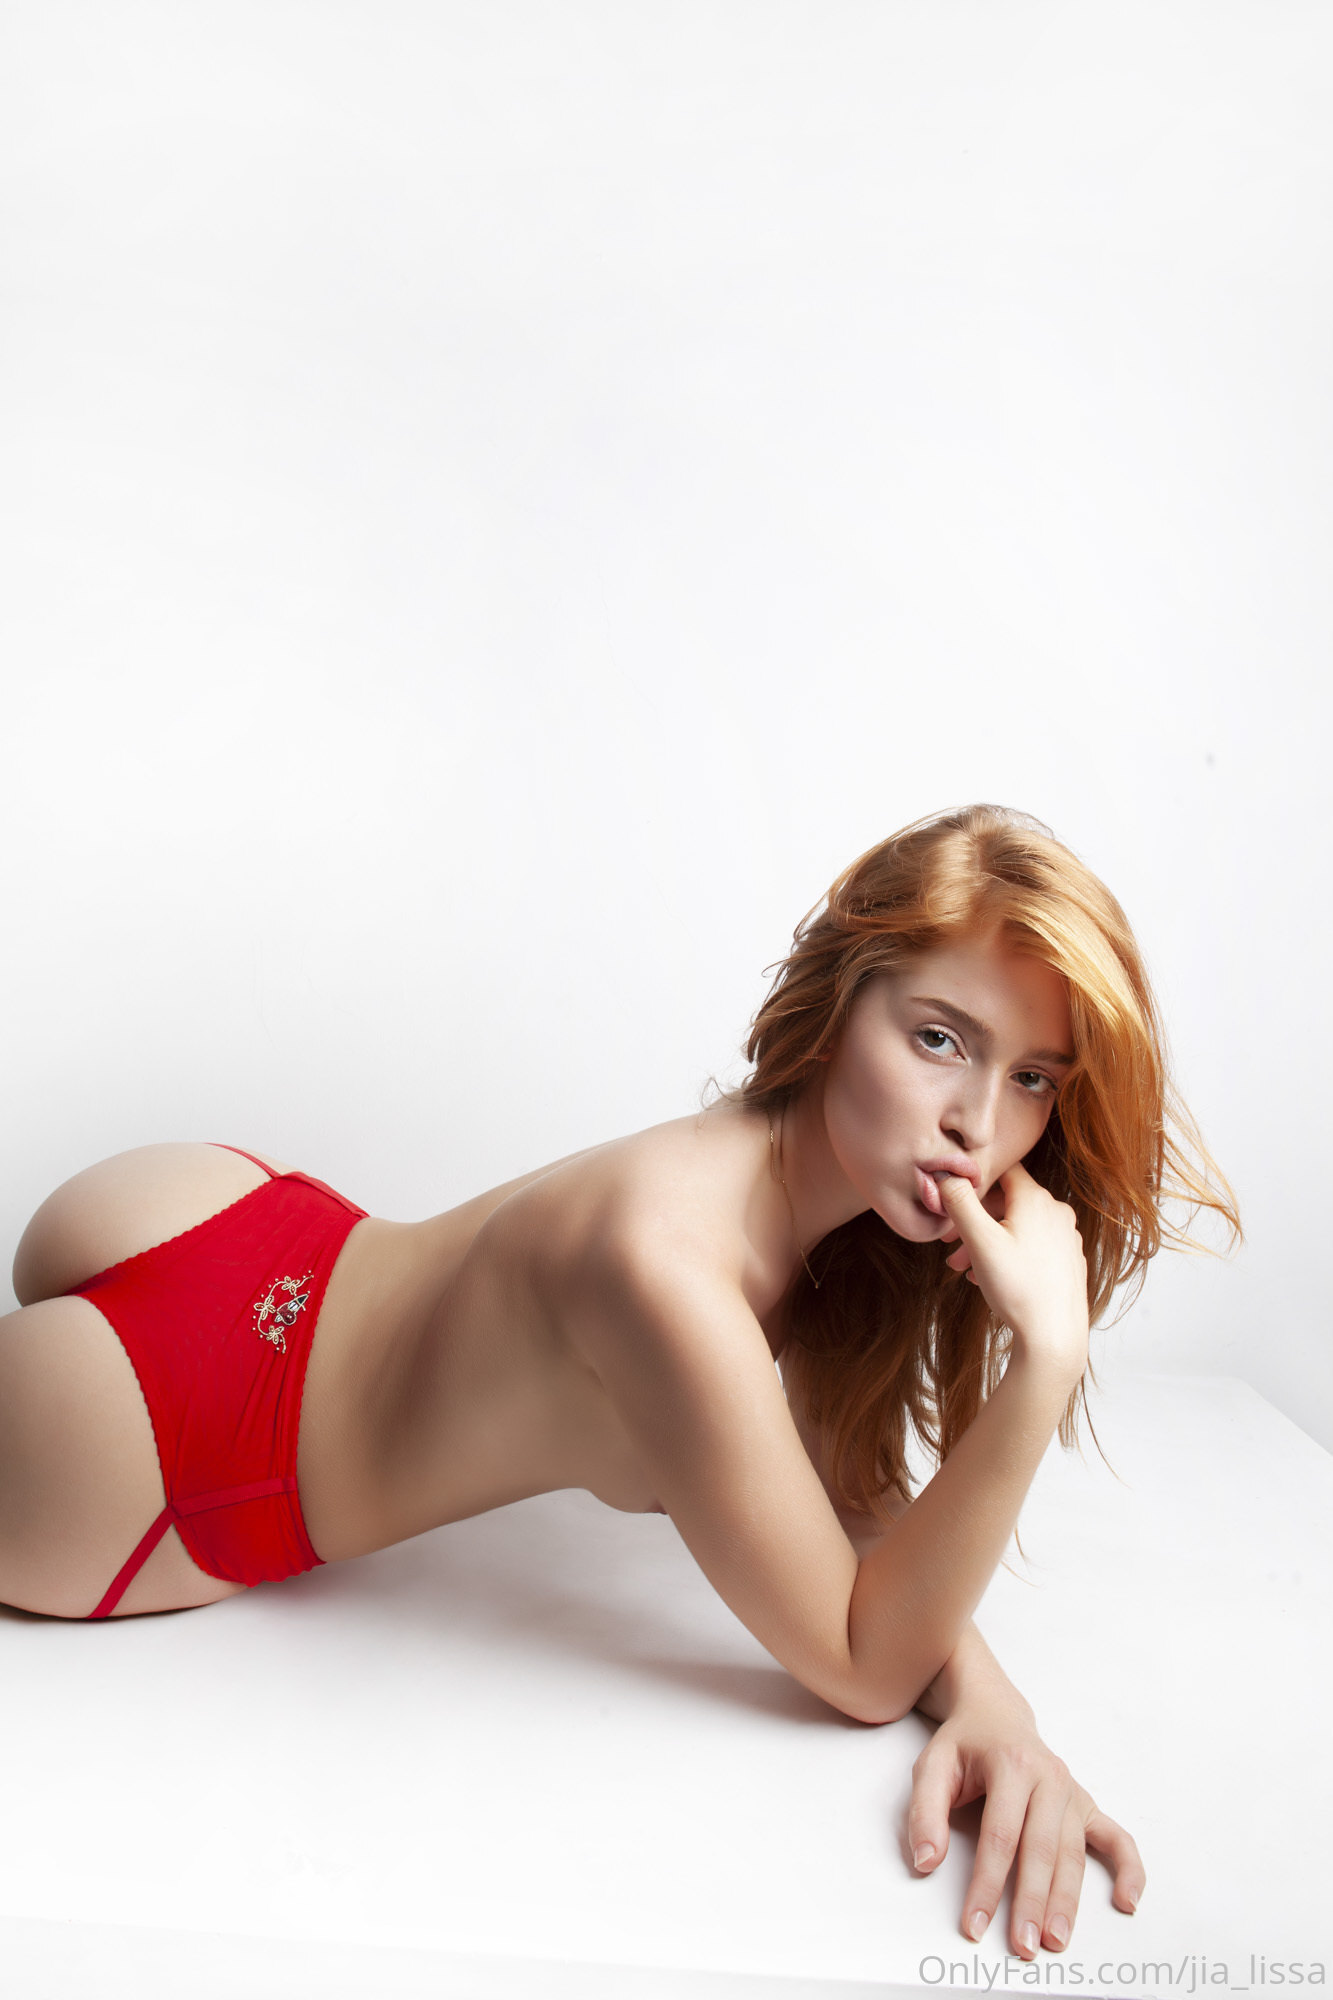 Jia Lissa Porn OnlyFans Leaked Nudes 52